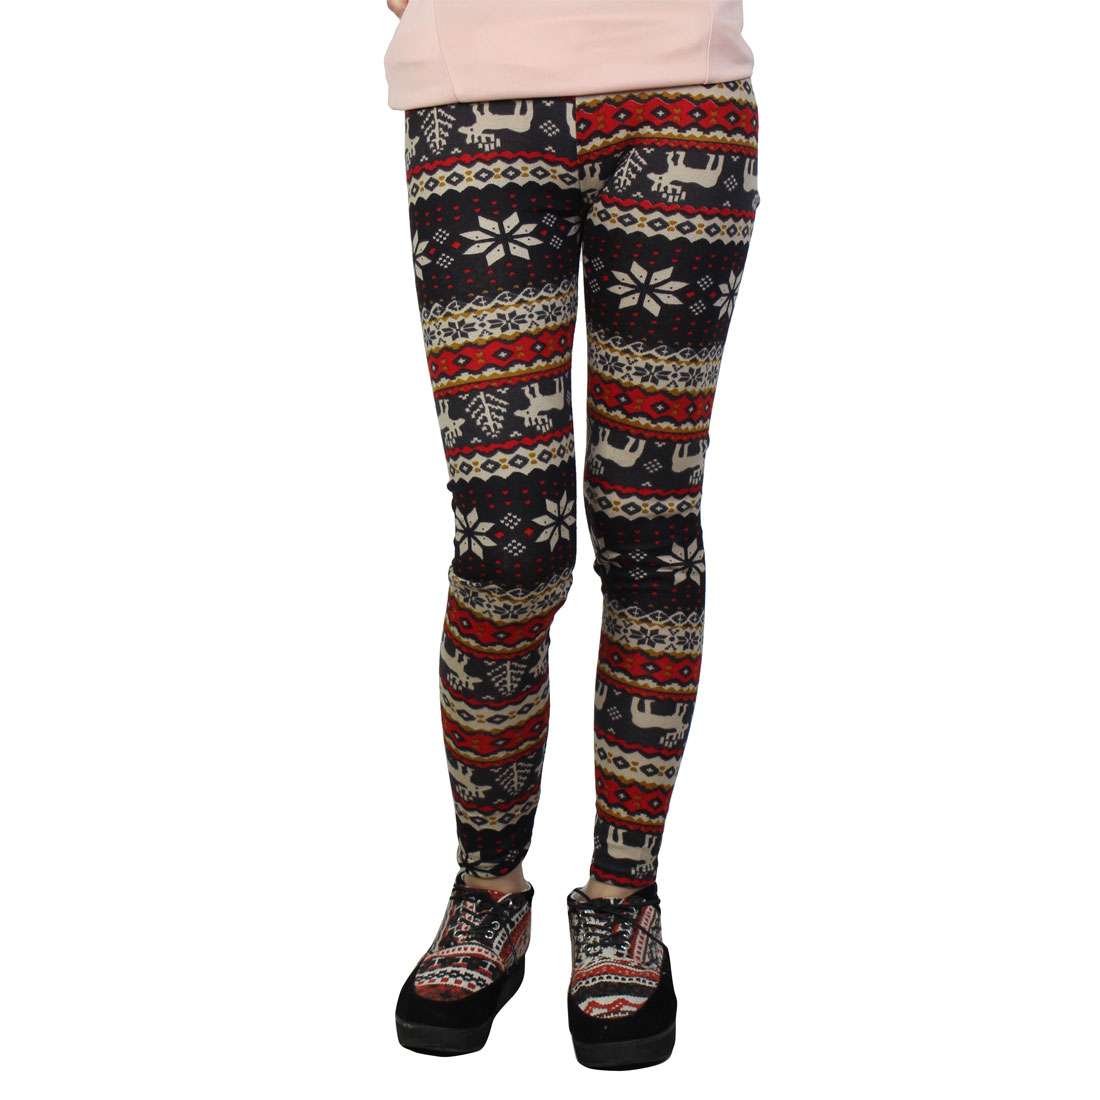 Elastic Waist Snowflake Print Assorted Color Legging XS for Women